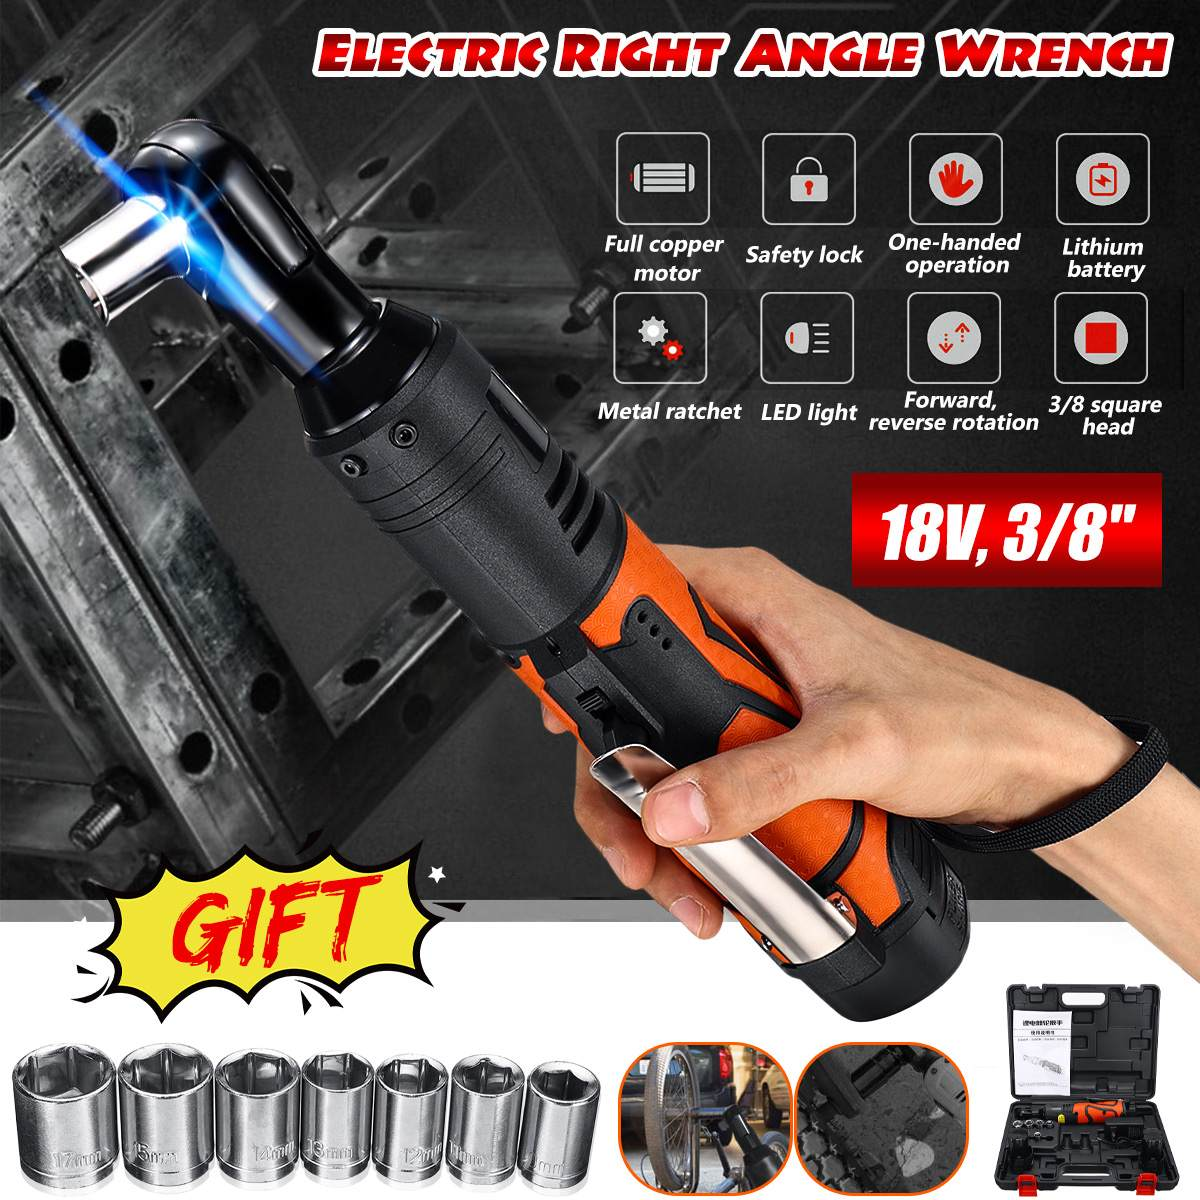 Portable 18V Cordless Electric Wrench 3/8'' 60N.m Rechargeable Ratchet 90 Degree Right Angle Wrench Power Tools Set